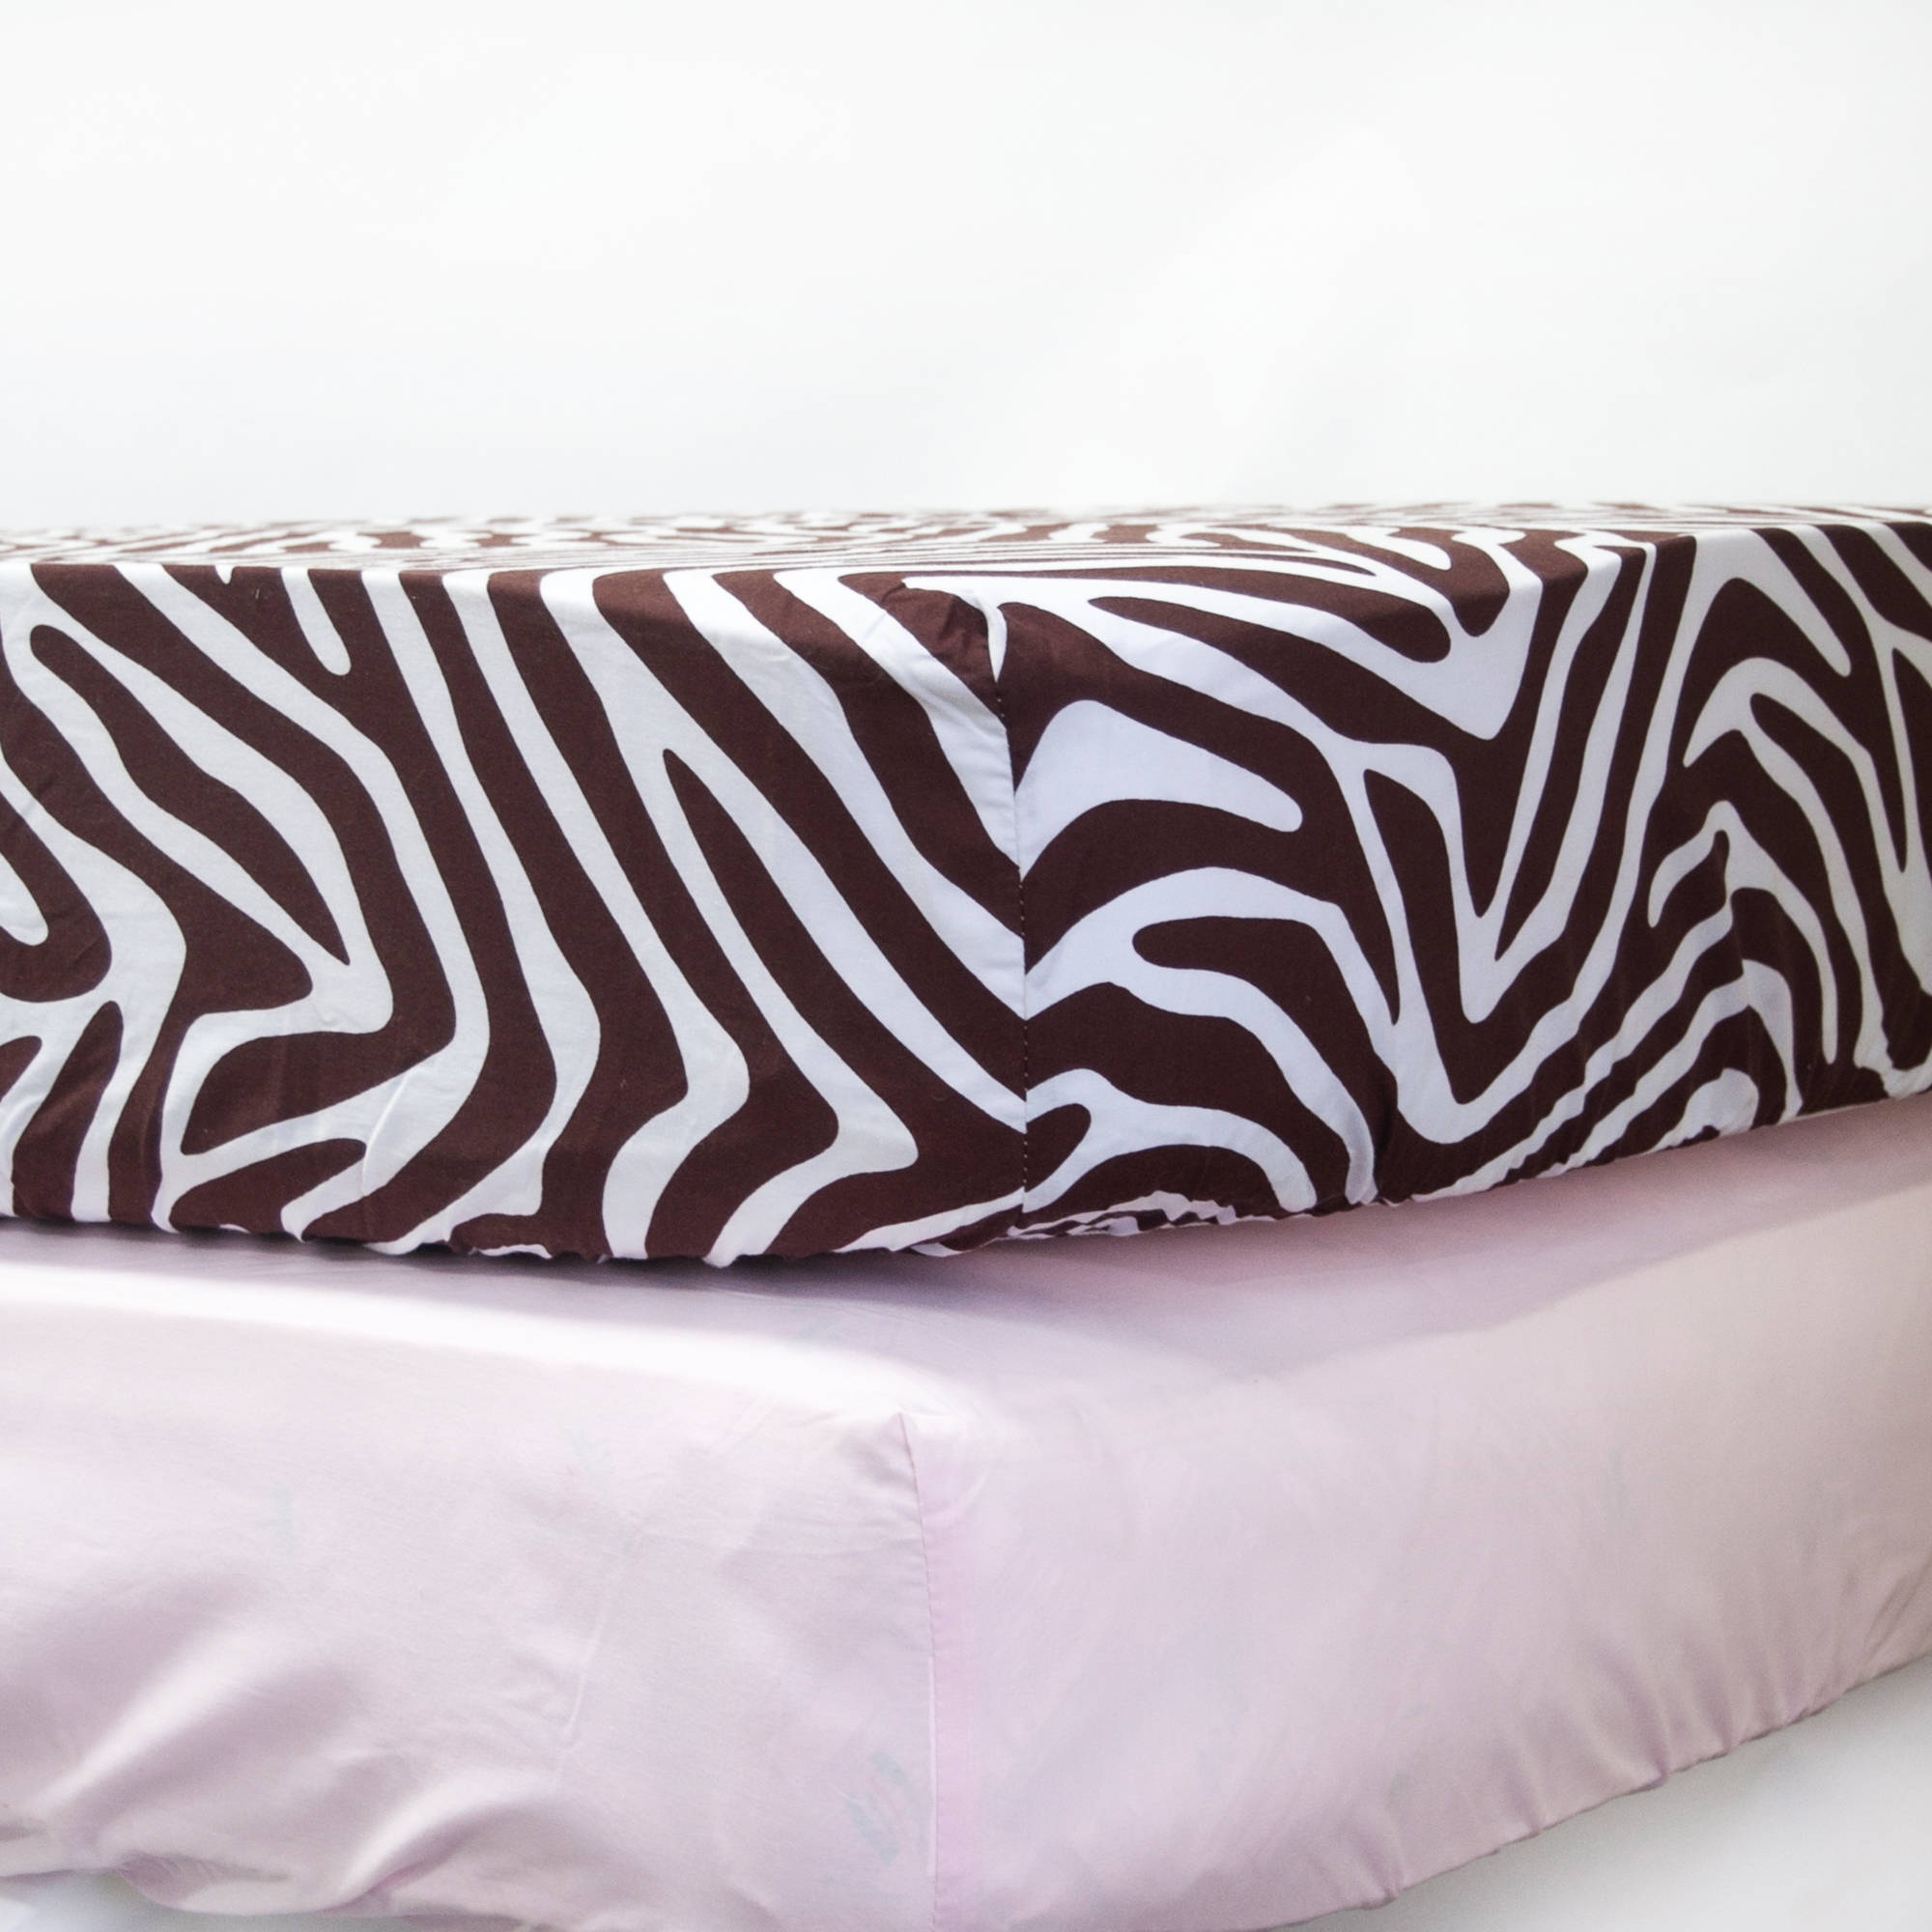 Pam Grace Creations Zara Zebra Crib Sheet